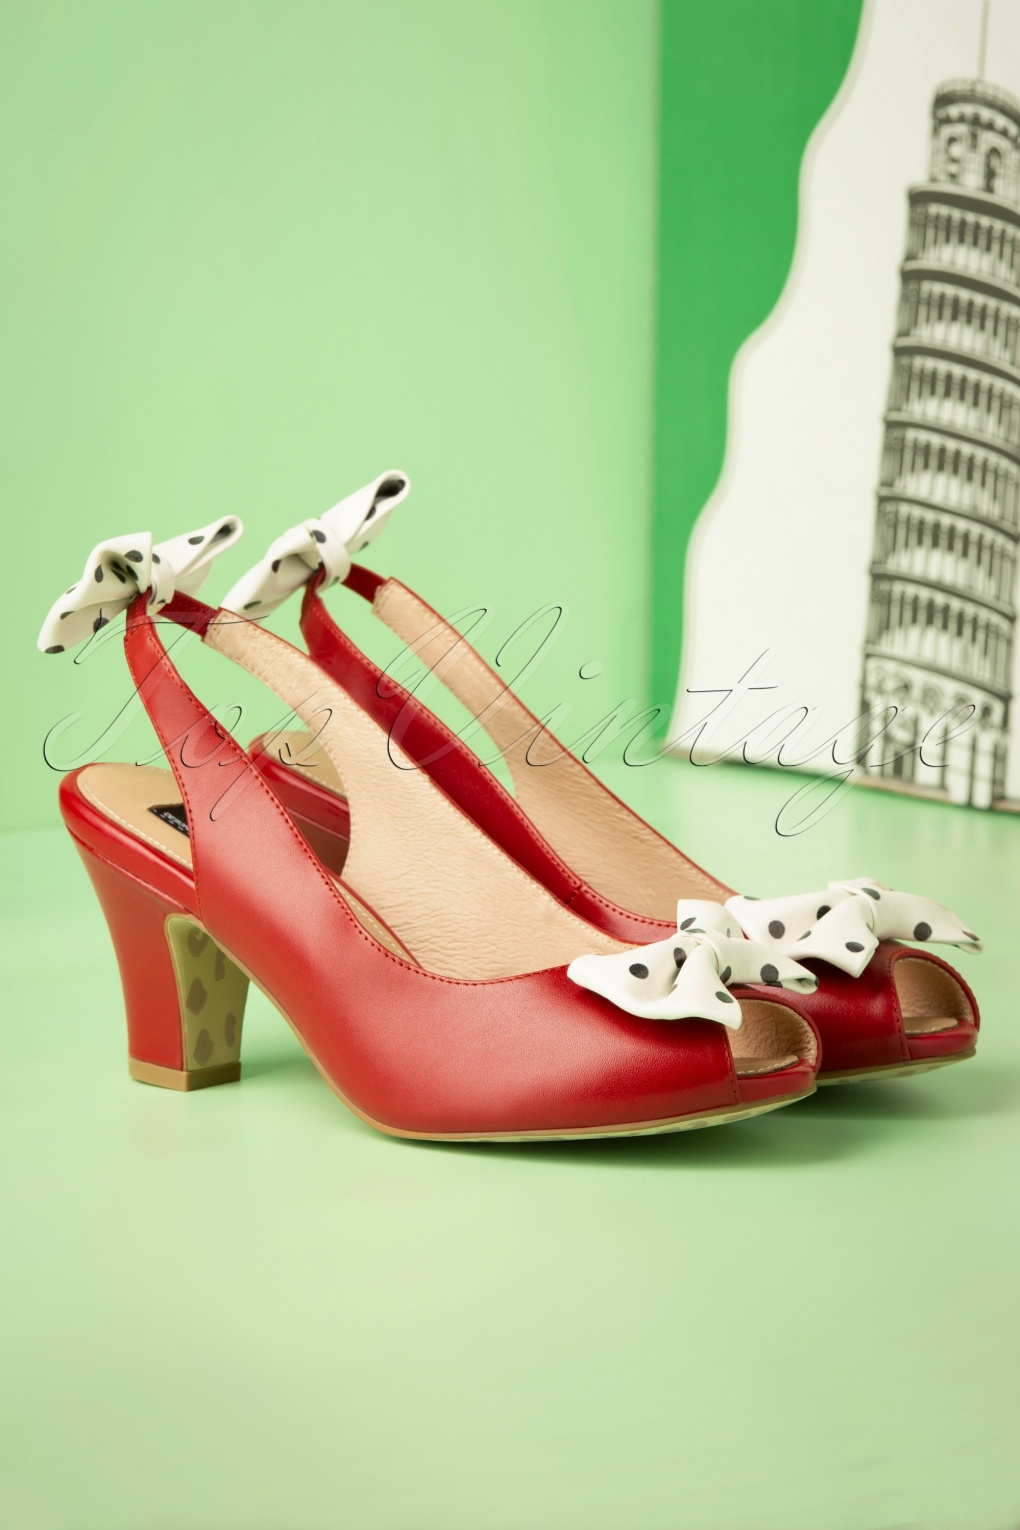 Rockabilly Shoes- Heels, Pumps, Boots, Flats 50s Ava Carina Bow Sandalettes in Red £84.14 AT vintagedancer.com